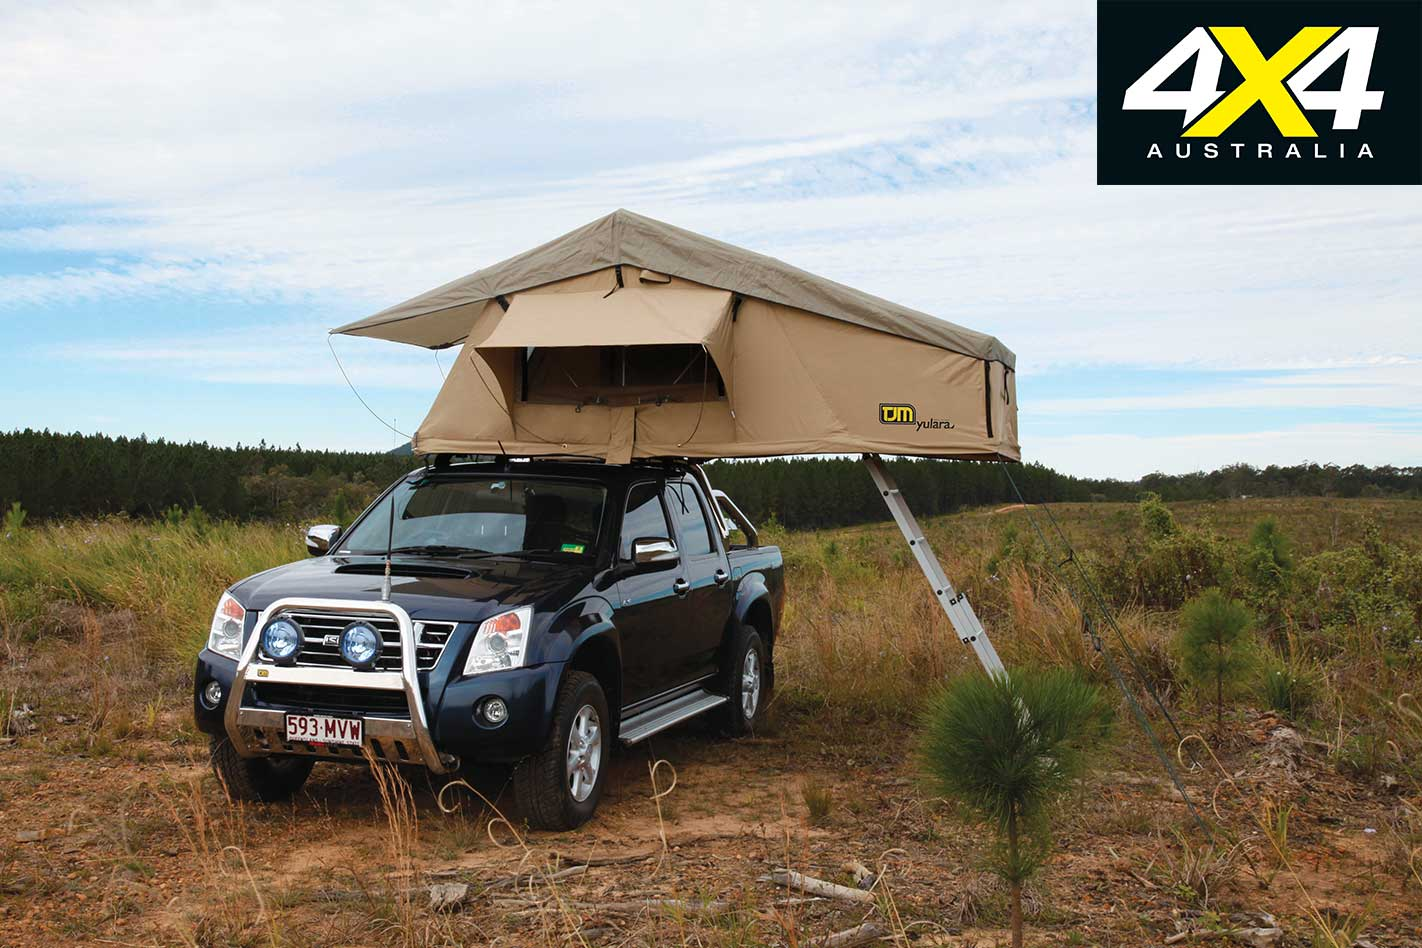 The experts were in unison when discussing what separates quality products from u0027online specialsu0027 and they all agreed the quality of the materials and the ... & Rooftop Tent Buyersu0027 Guide | 4X4 Australia